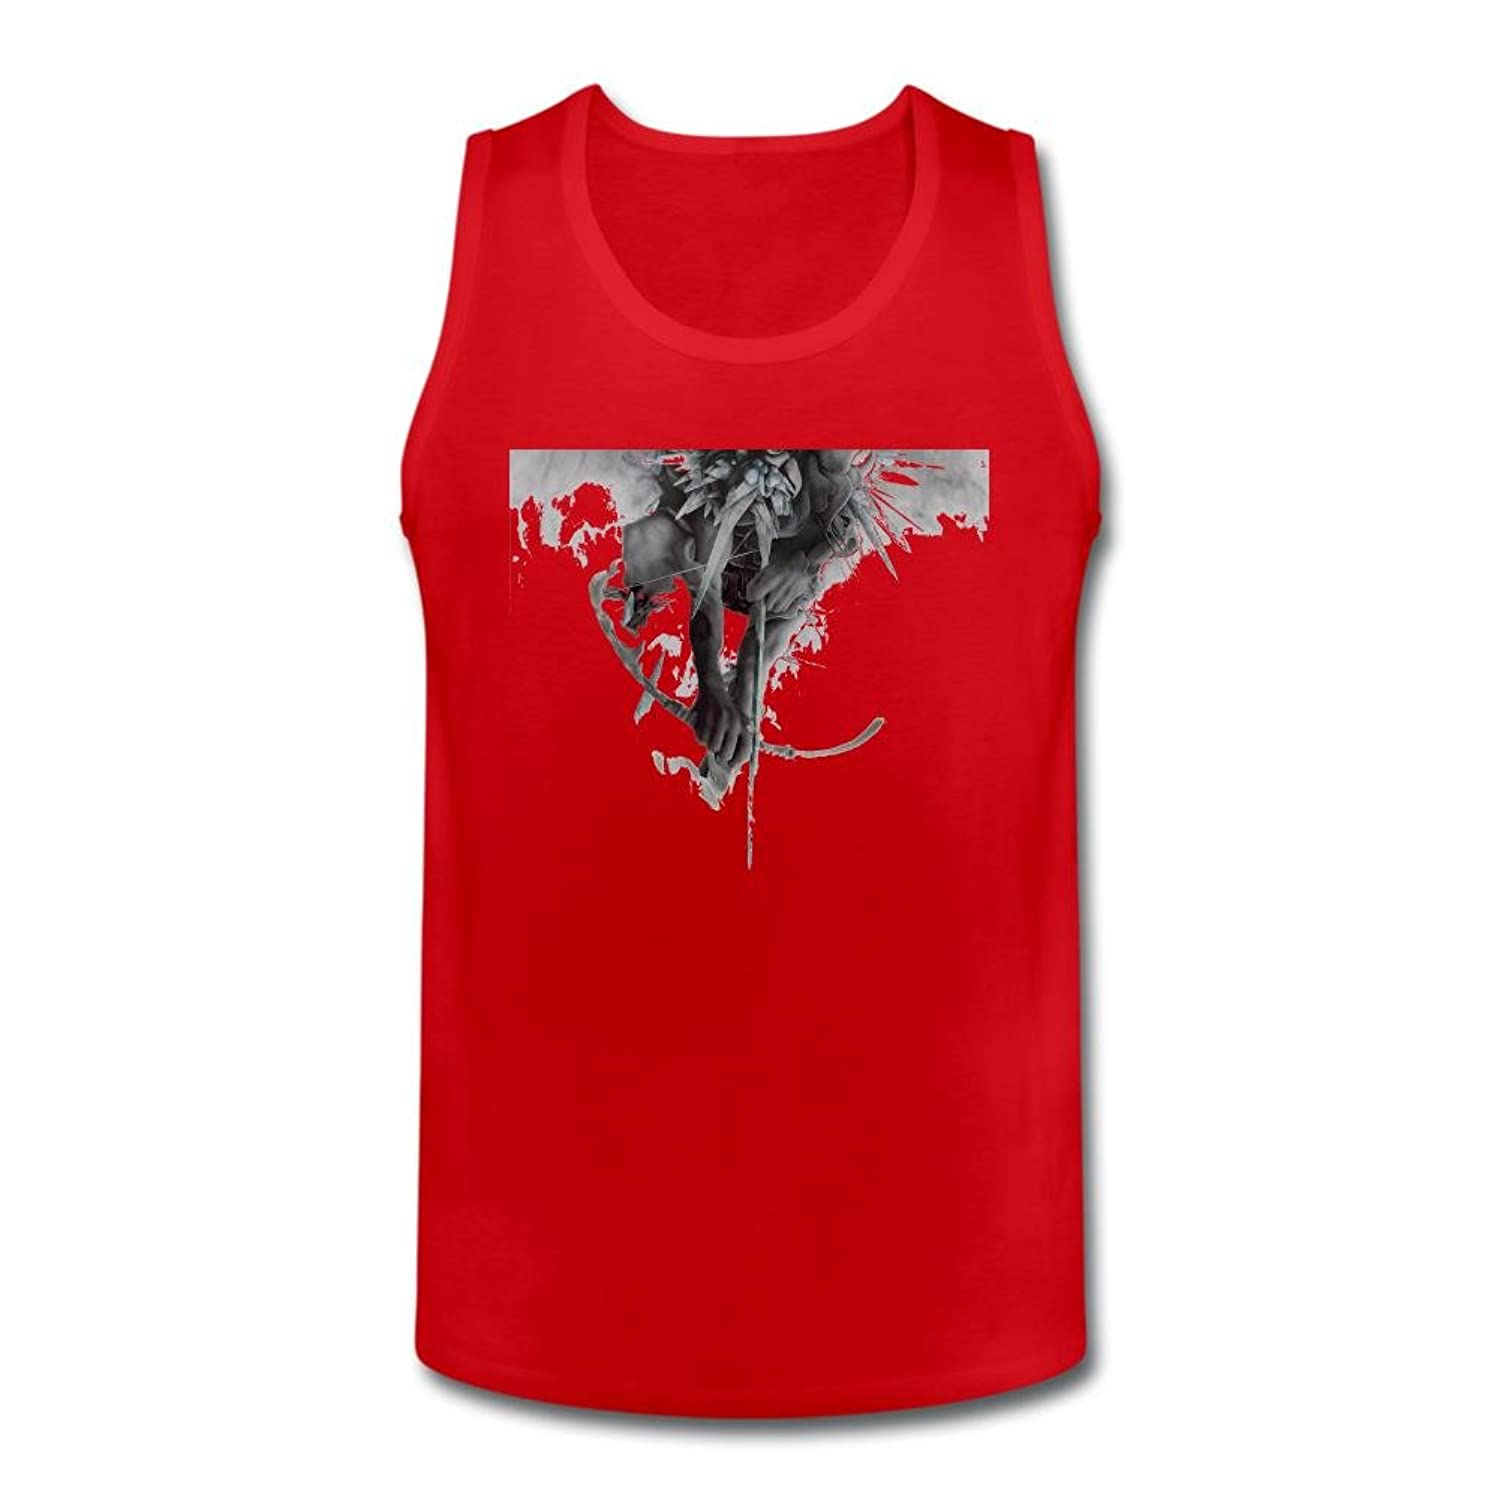 Ufx of Xview Men's Linkin Park The Hunting Party Vest Tank